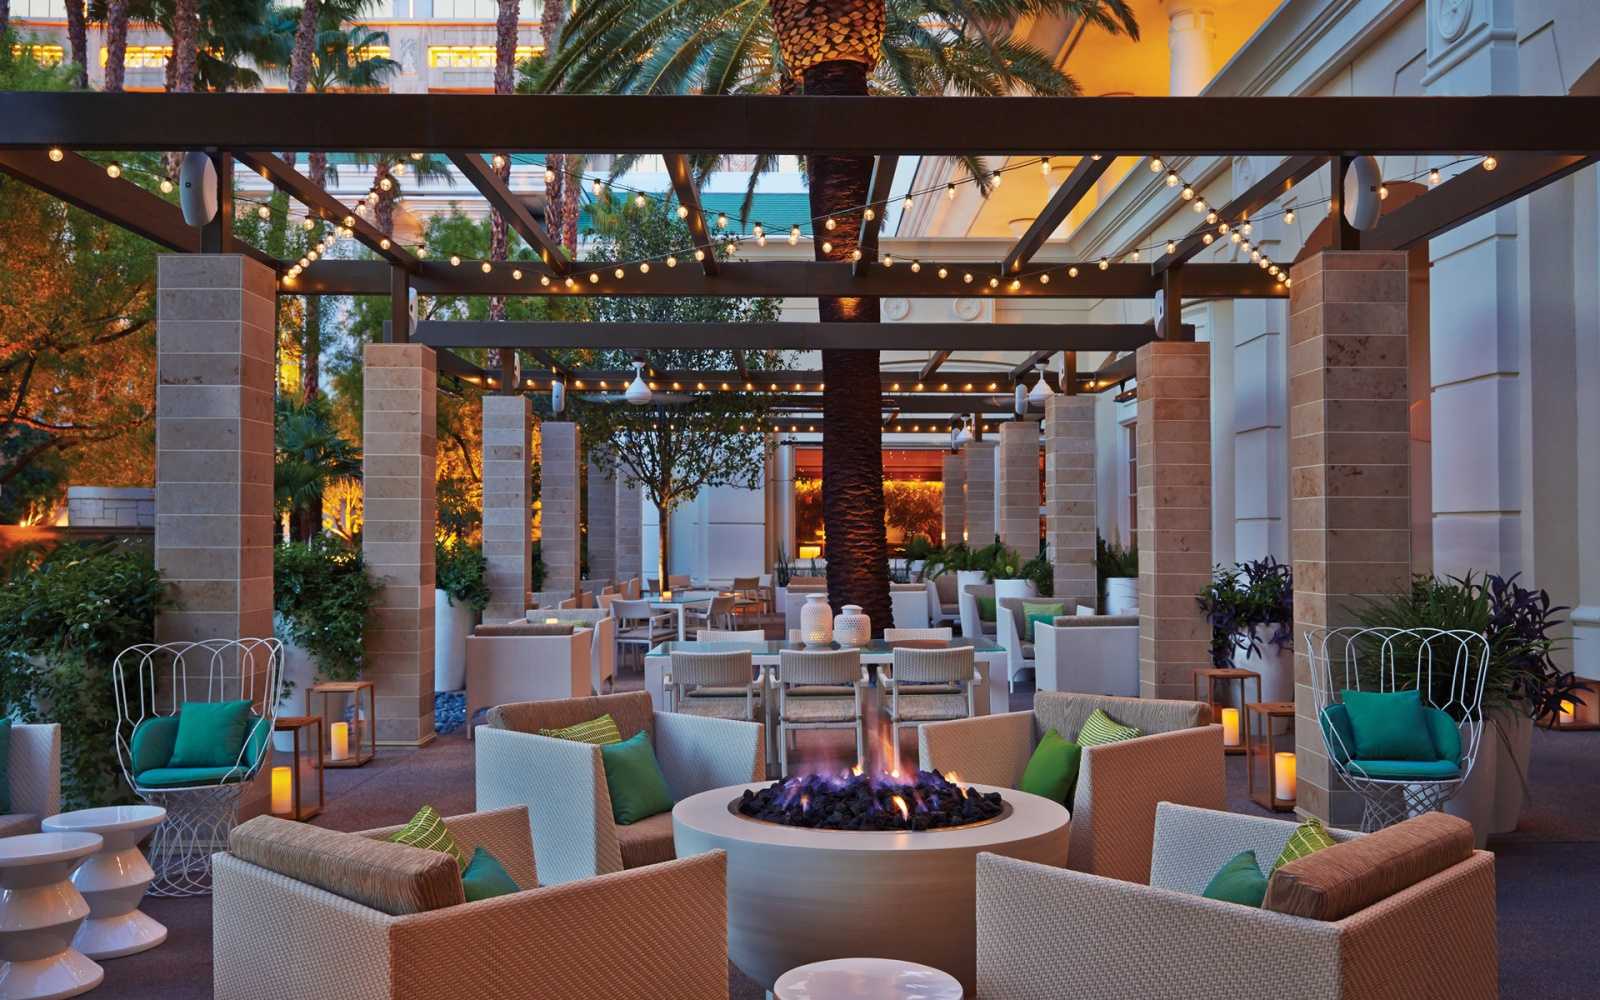 The Best Hotels in All 50 States 2015 | Travel + Leisure